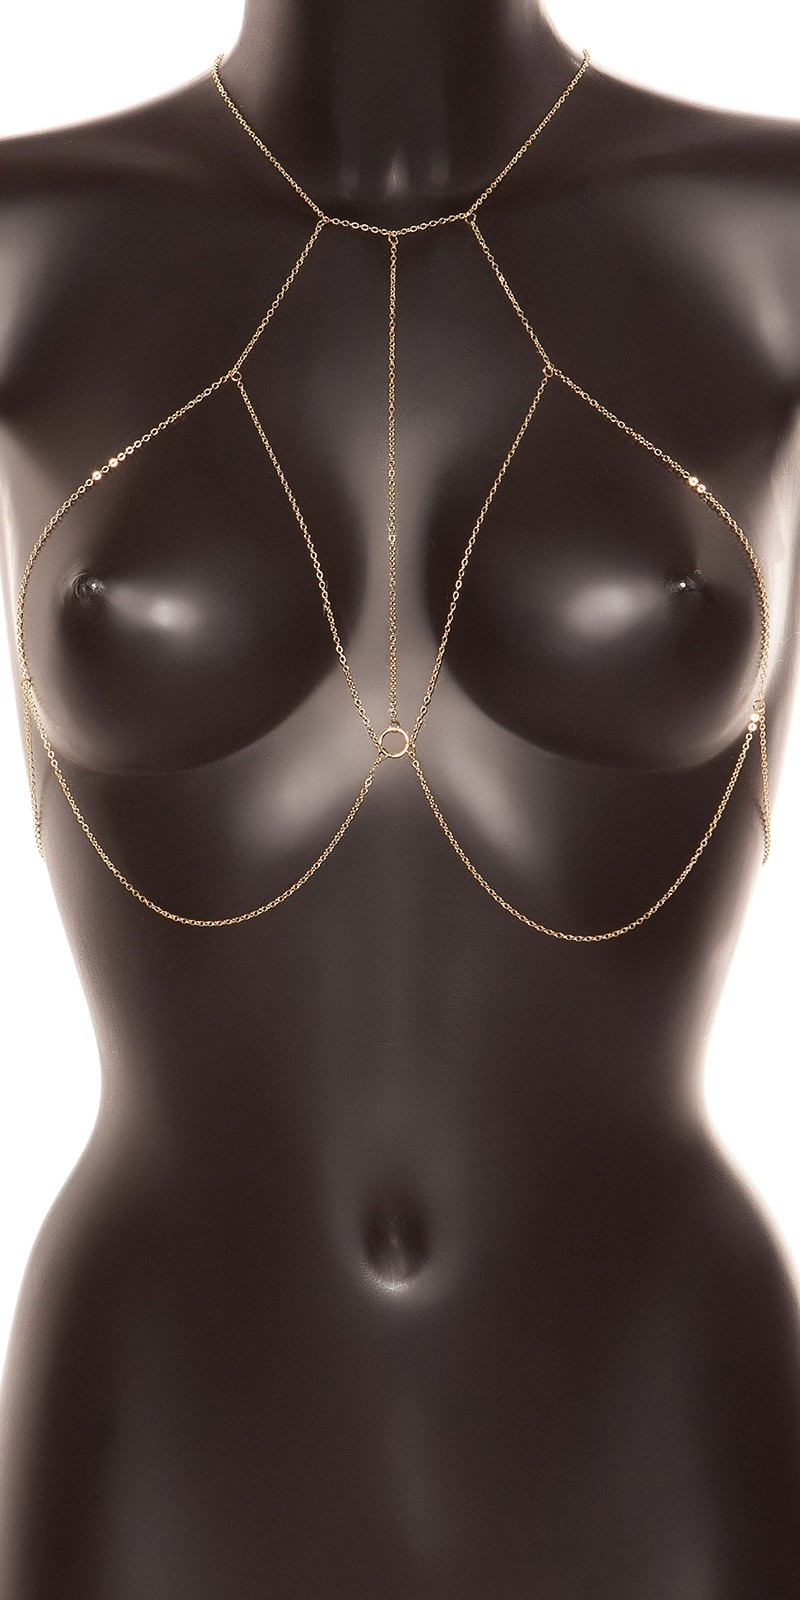 Sexy Bodychain Gold